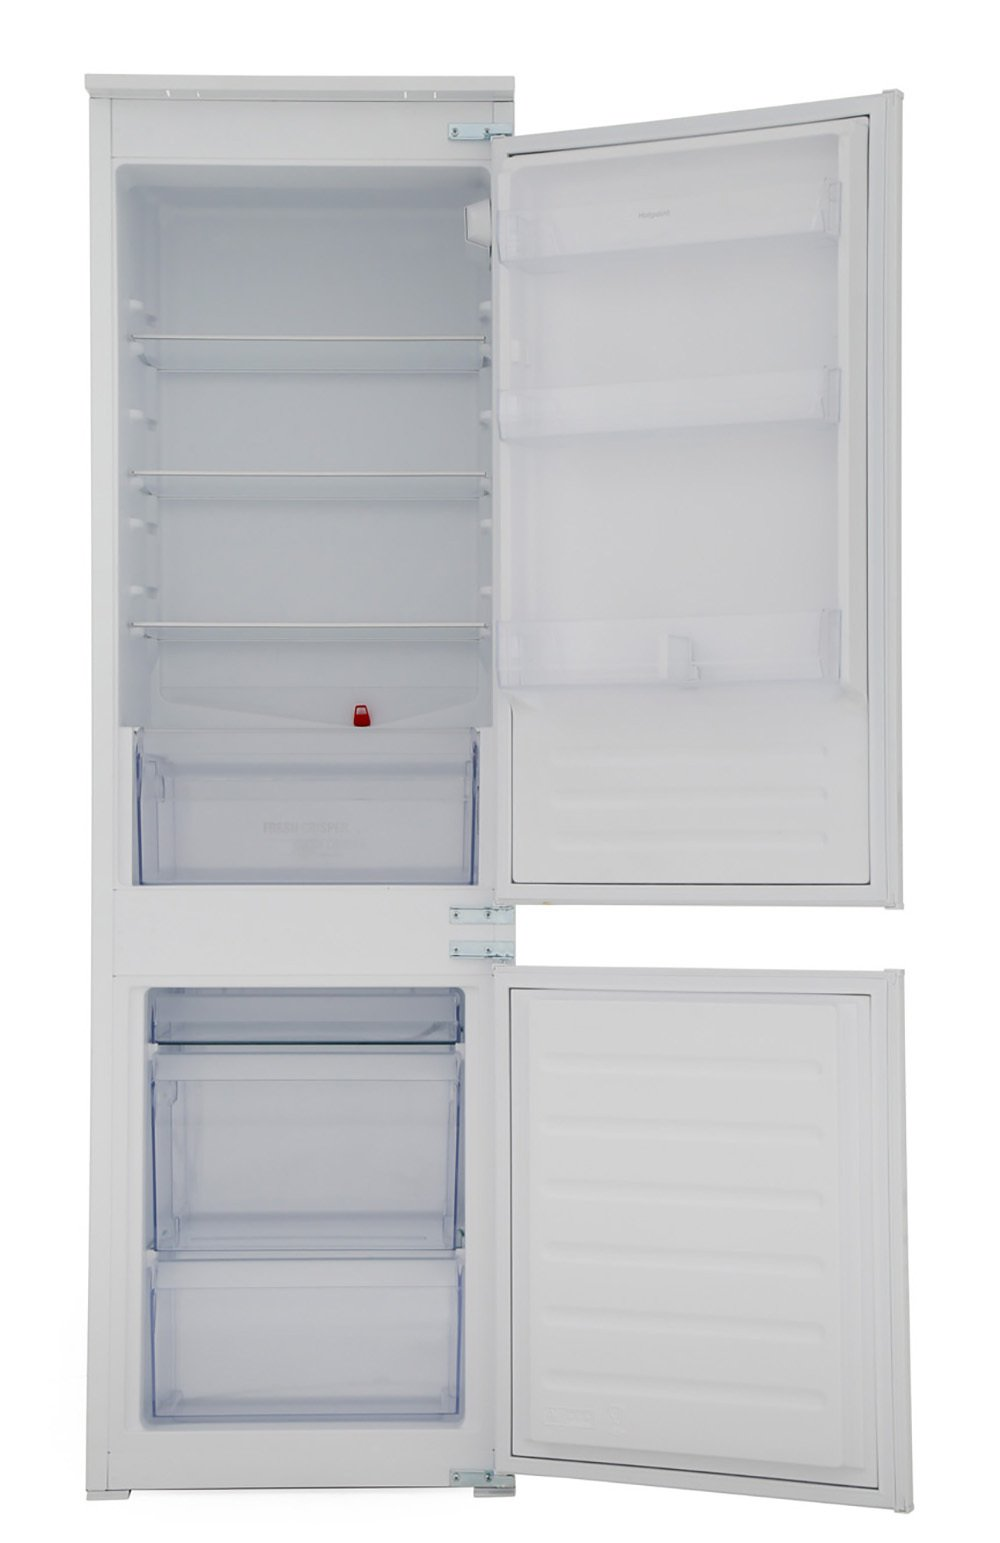 Hotpoint HMCB7030AA Low Frost Integrated Fridge Freezer